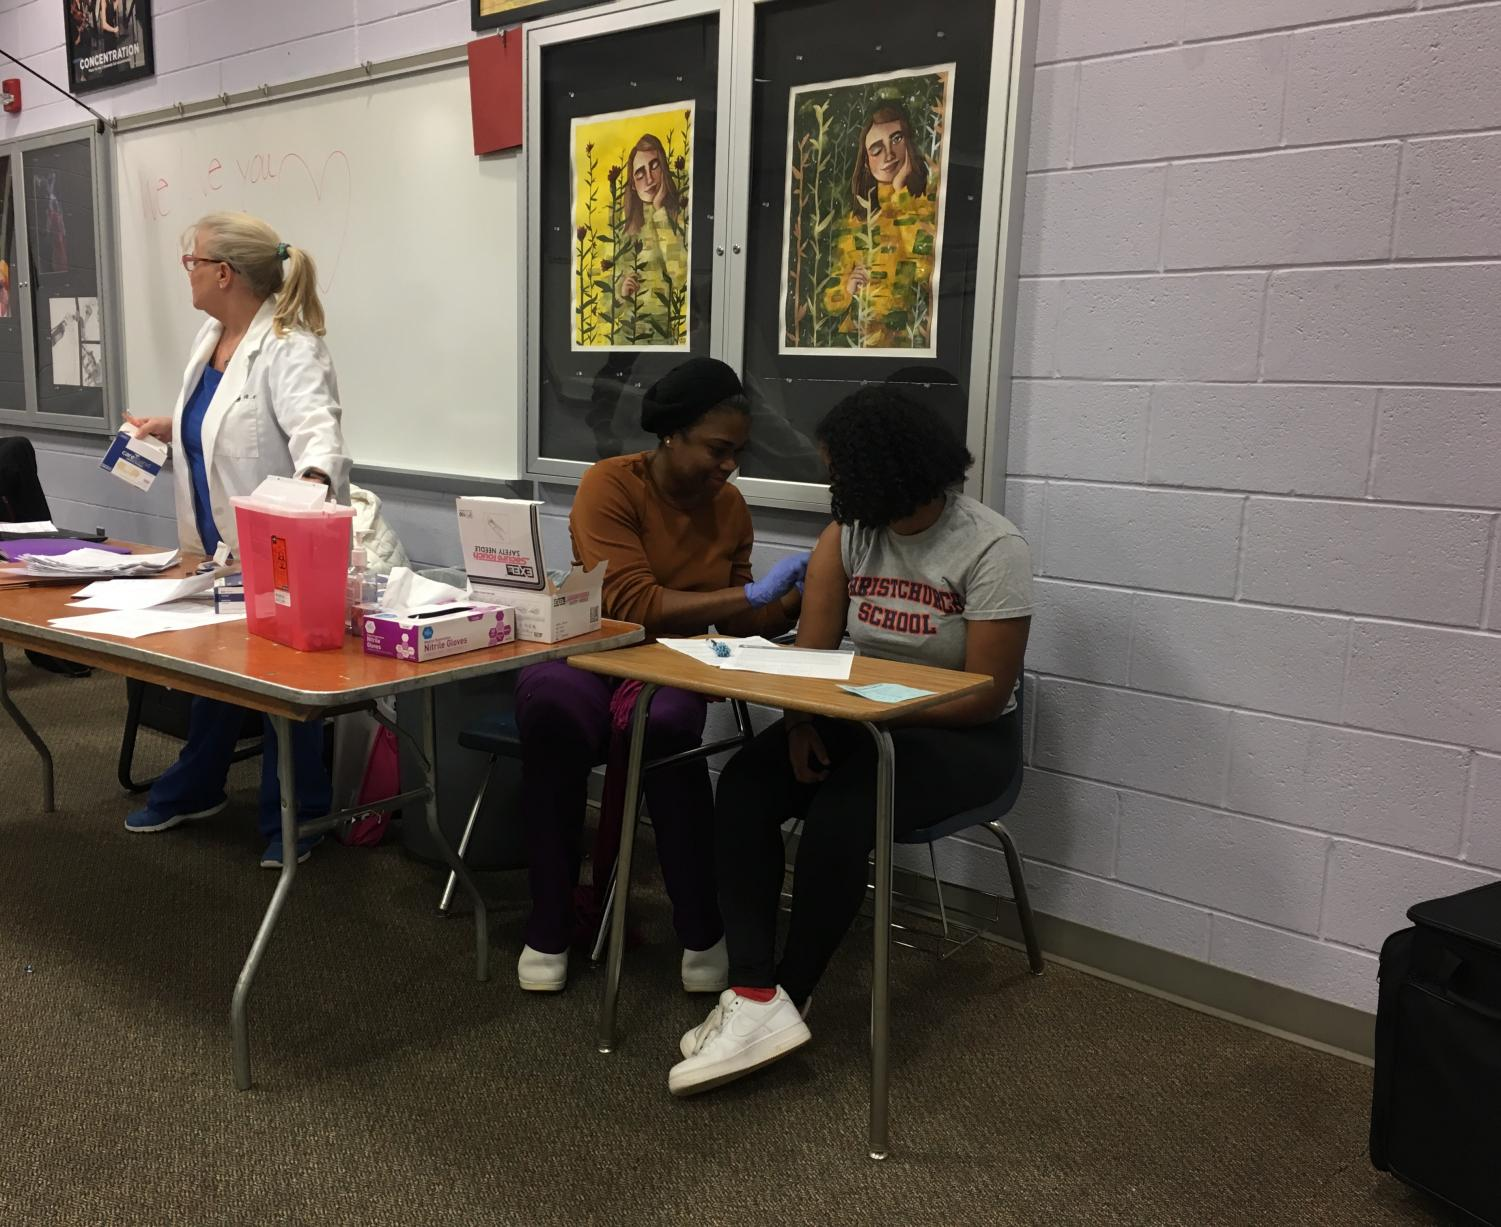 Junior Kalki Ausink receiving her annual flu shot from Medical Advisor Ms. Dorothy Cyphers, while other Medical Advisor Ms. Diane Lekang prepares for the next student.